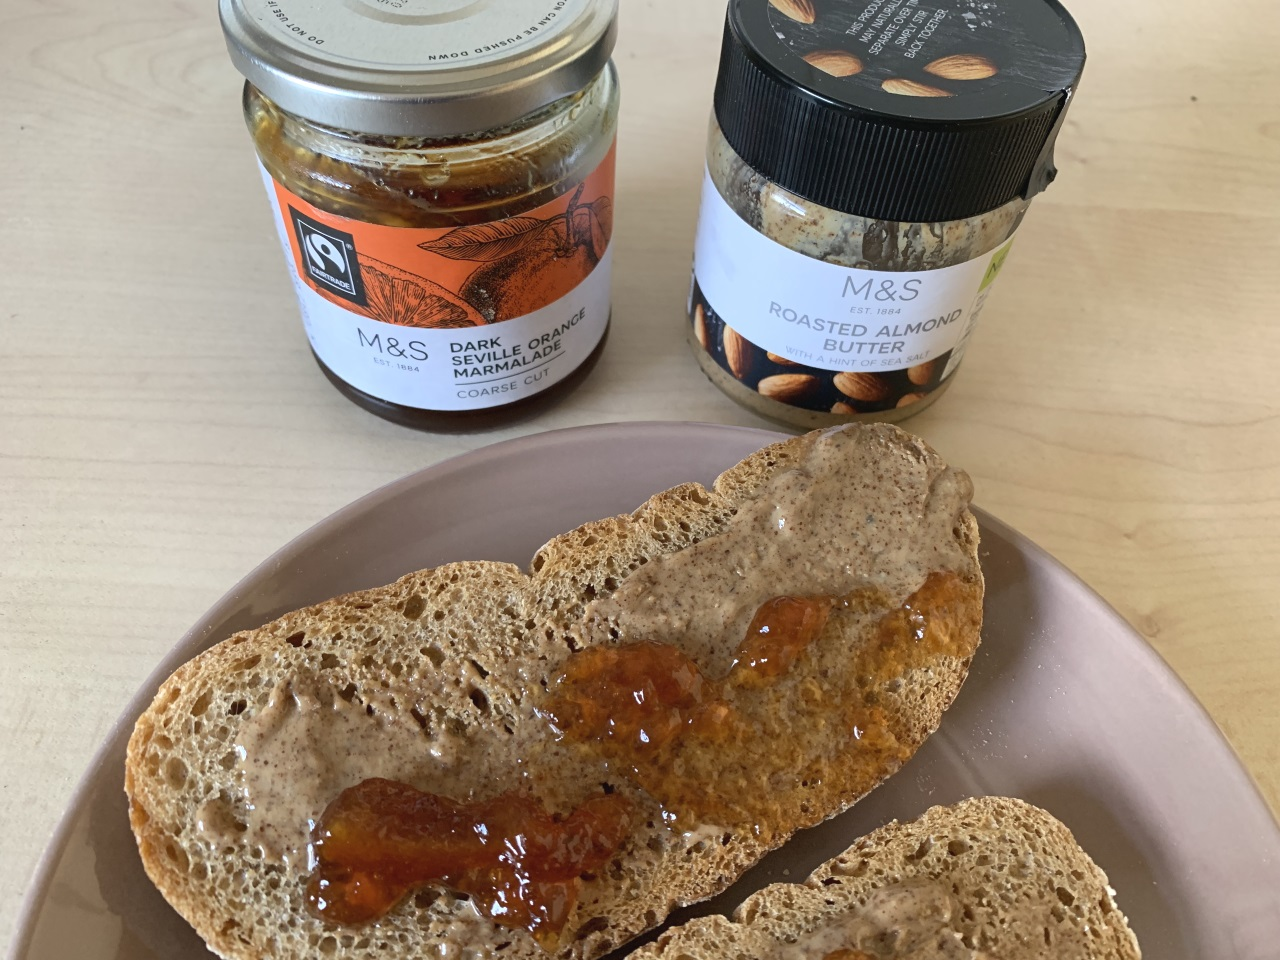 DARK SEVILLE ORANGE MARMALADE